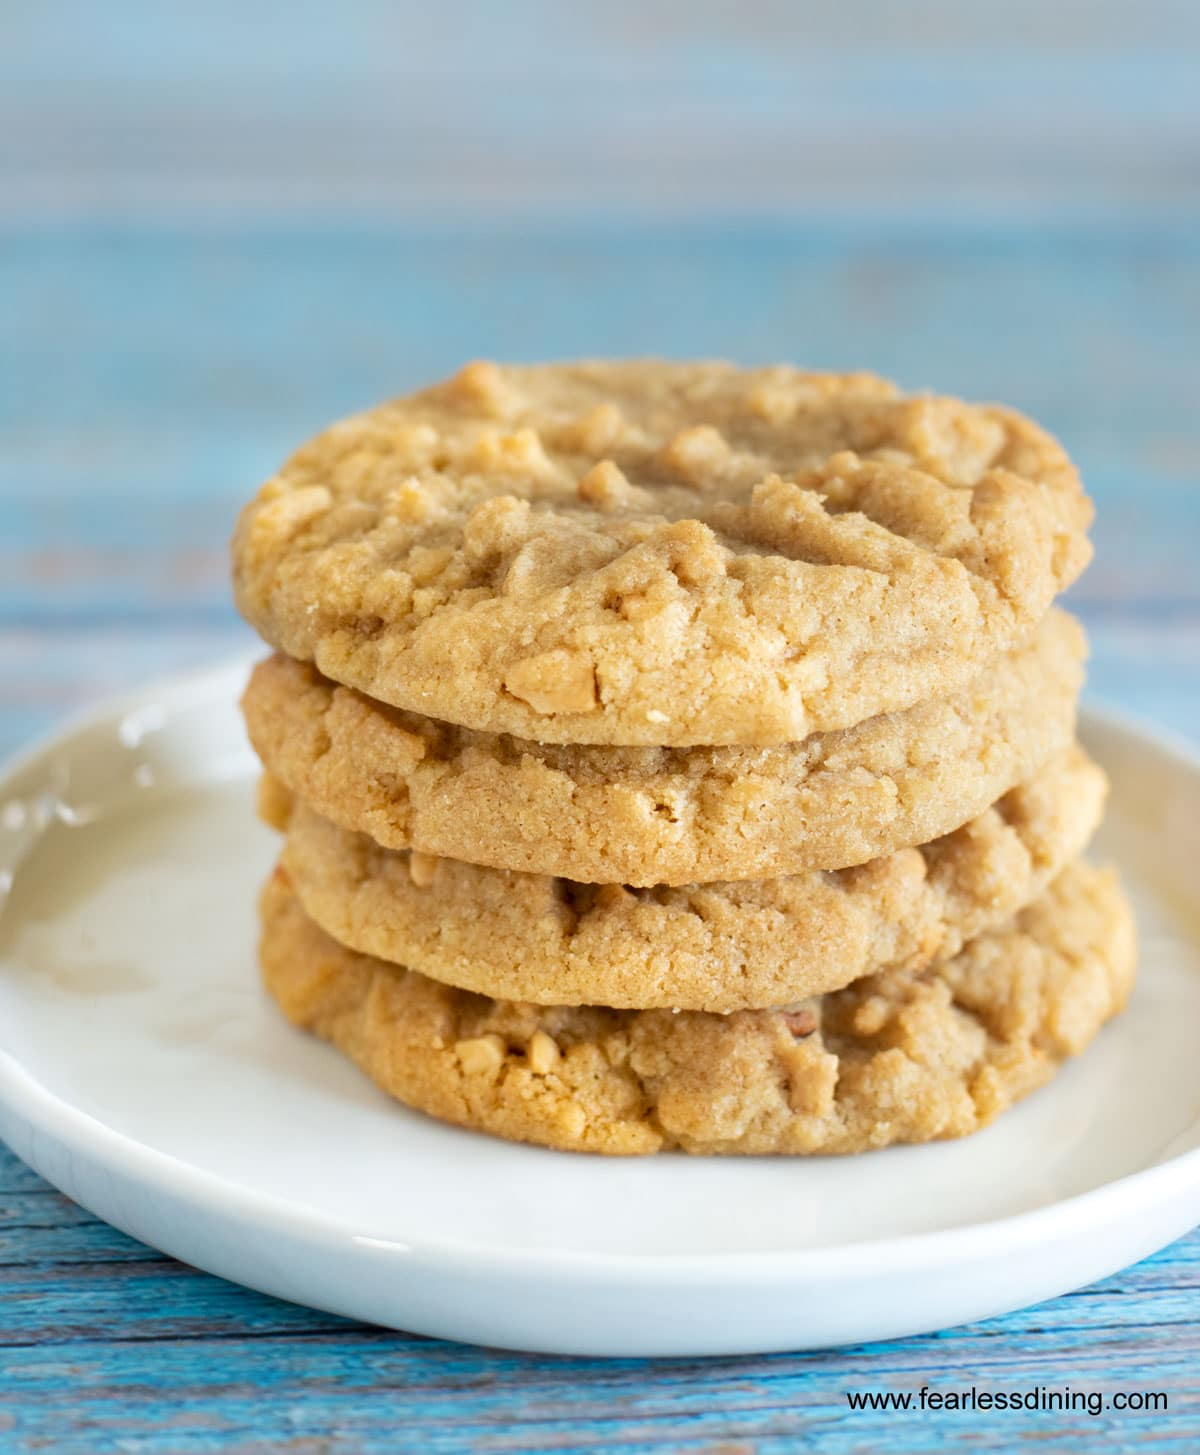 four peanut butter cookies on a white plate